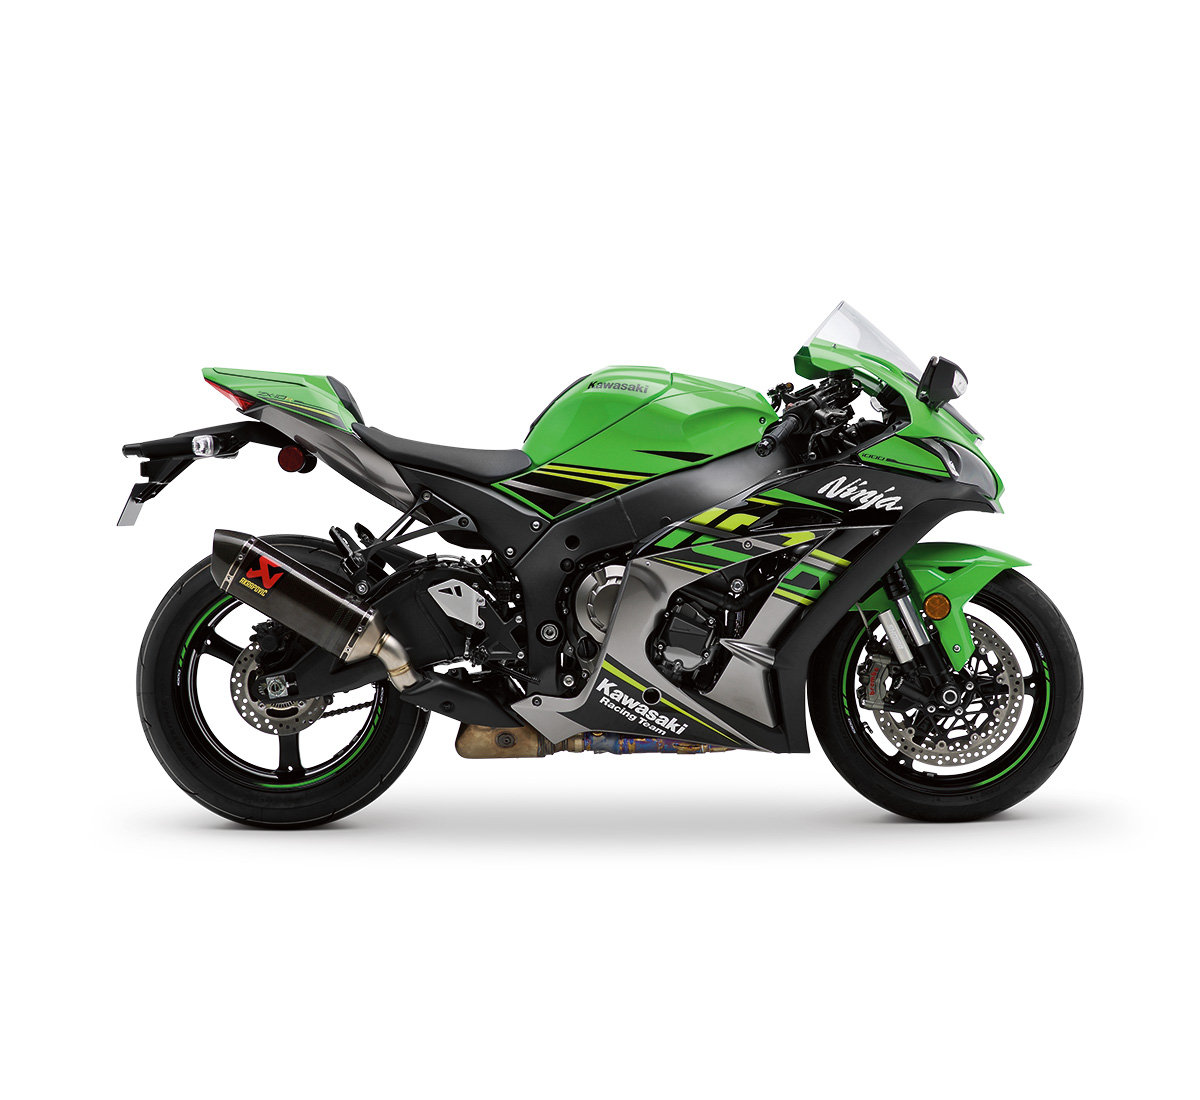 New 2019 Kawasaki Ninja ZX-10R ABS KRT Performance Edition For Sale (picture 2 of 6)